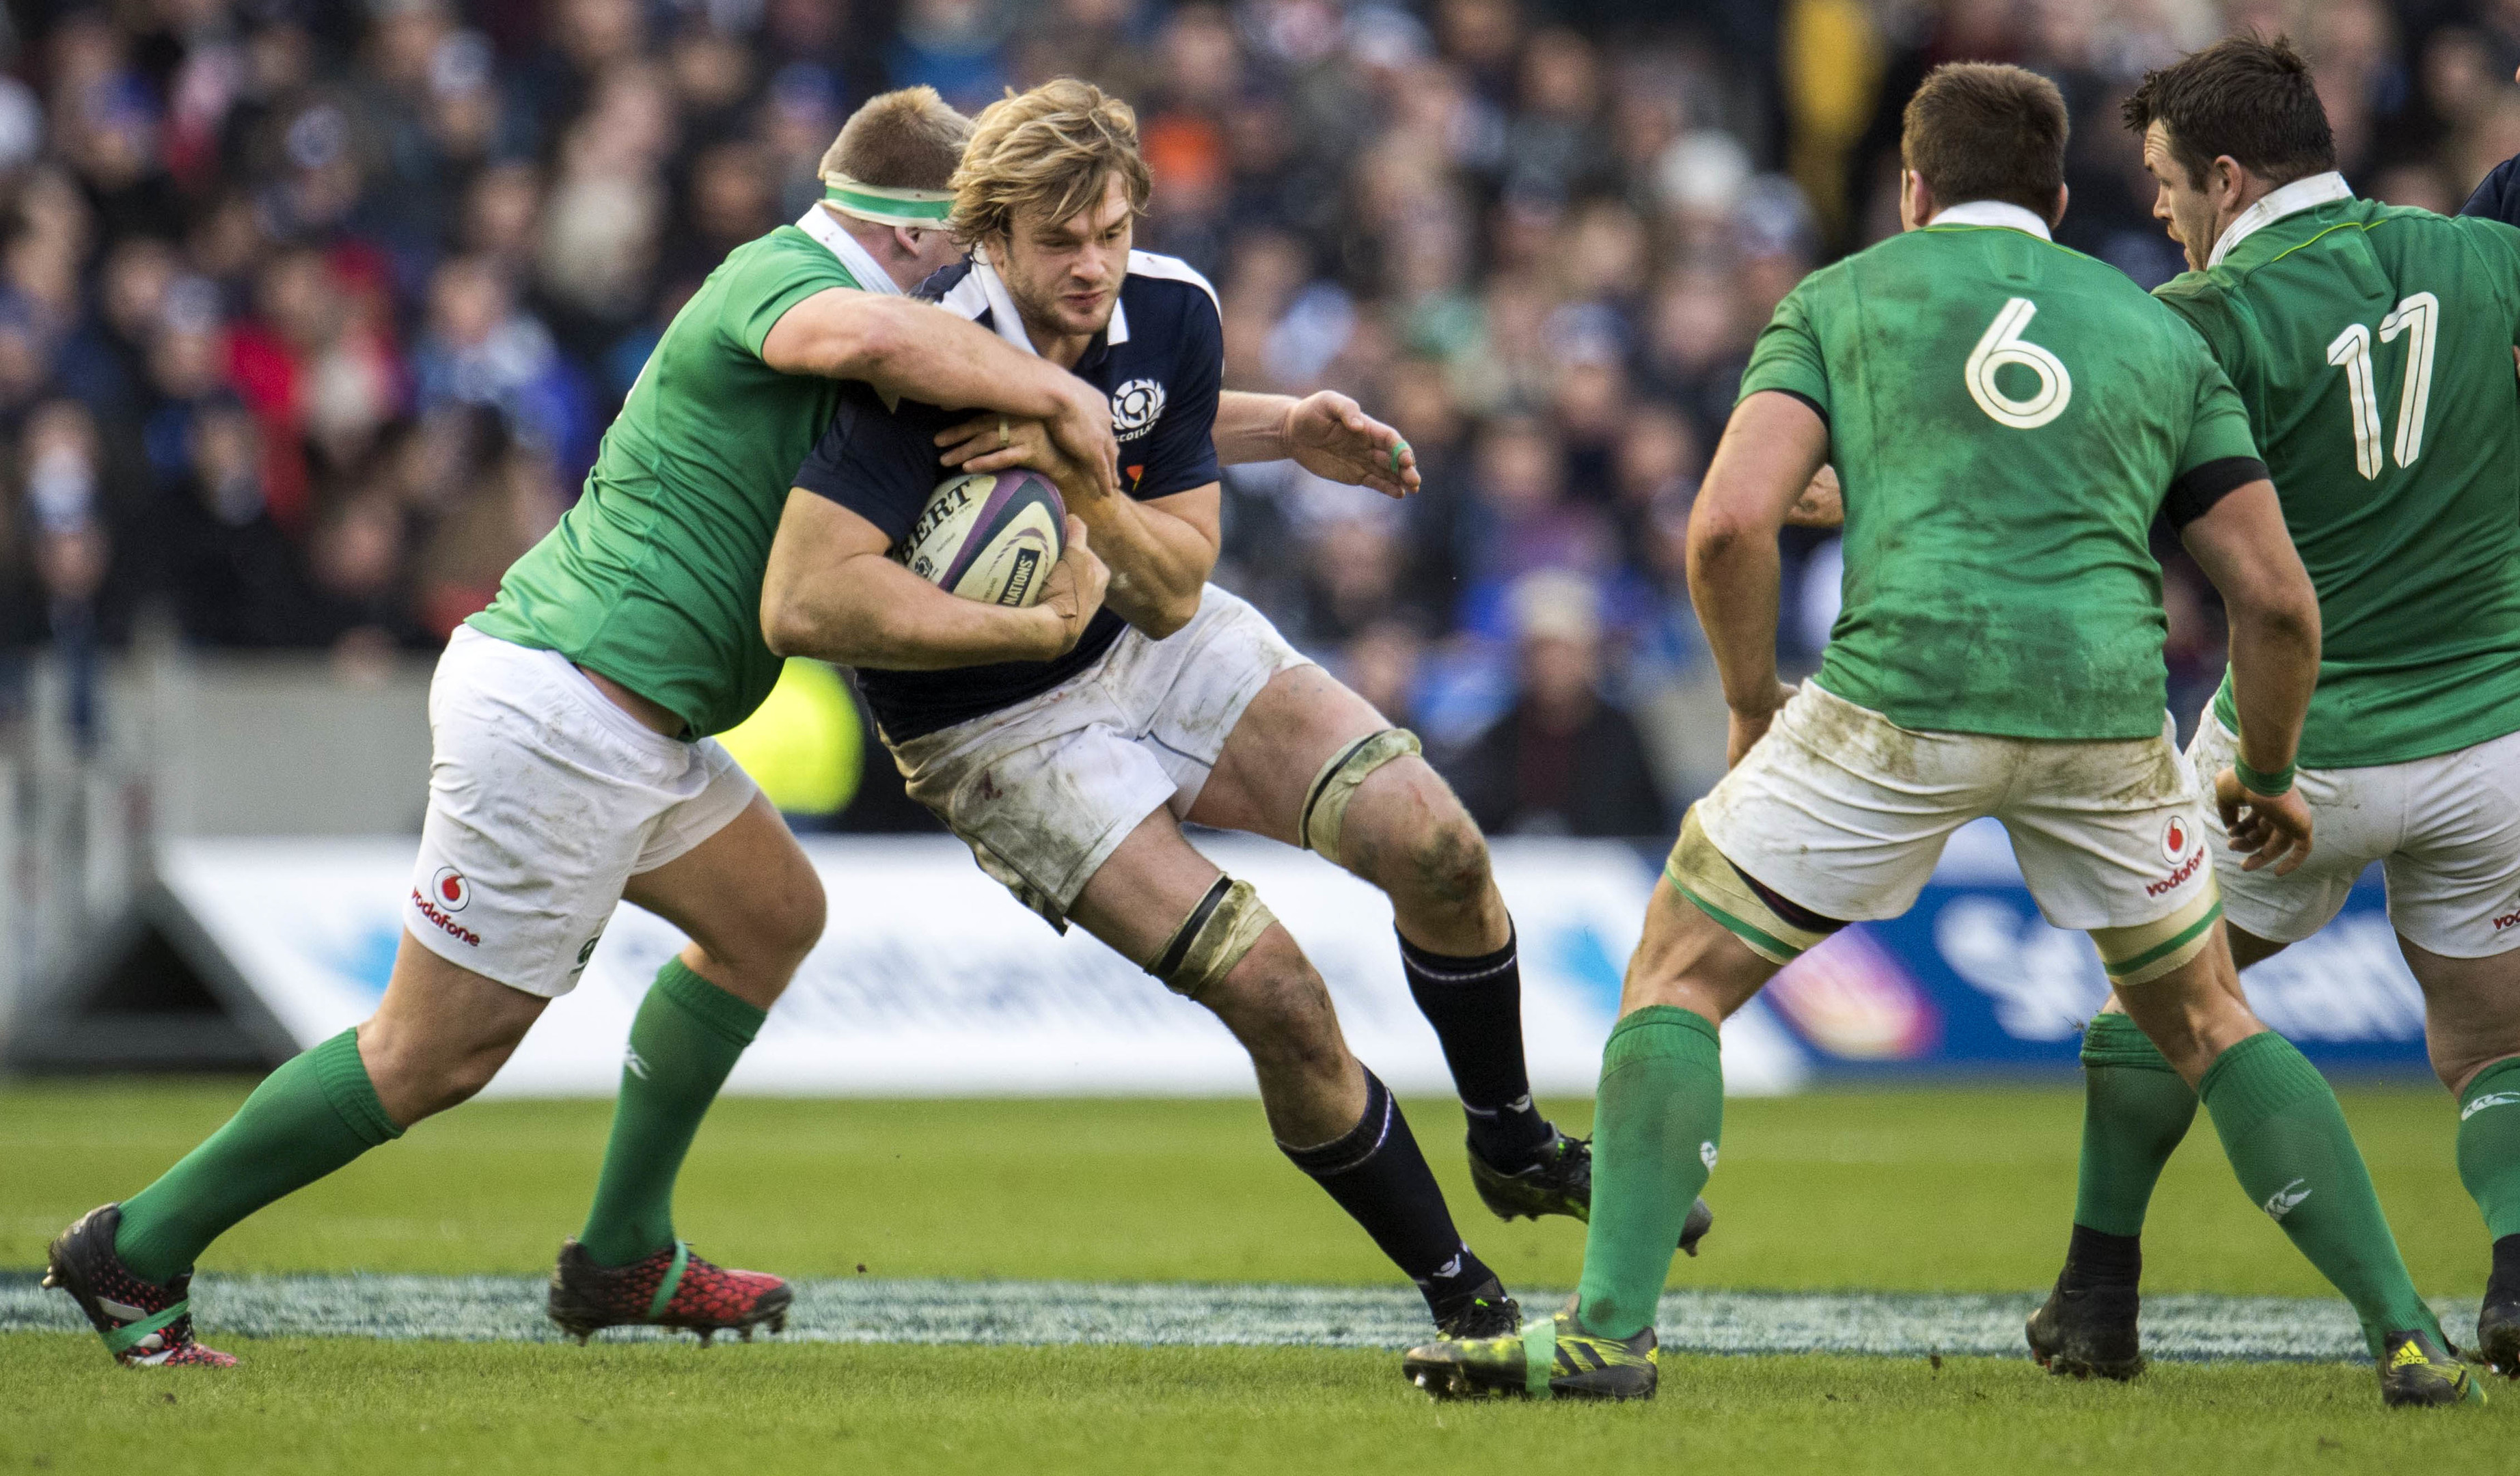 Richie Gray will miss the Six Nations opener against Wales and maybe more with a calf strain.